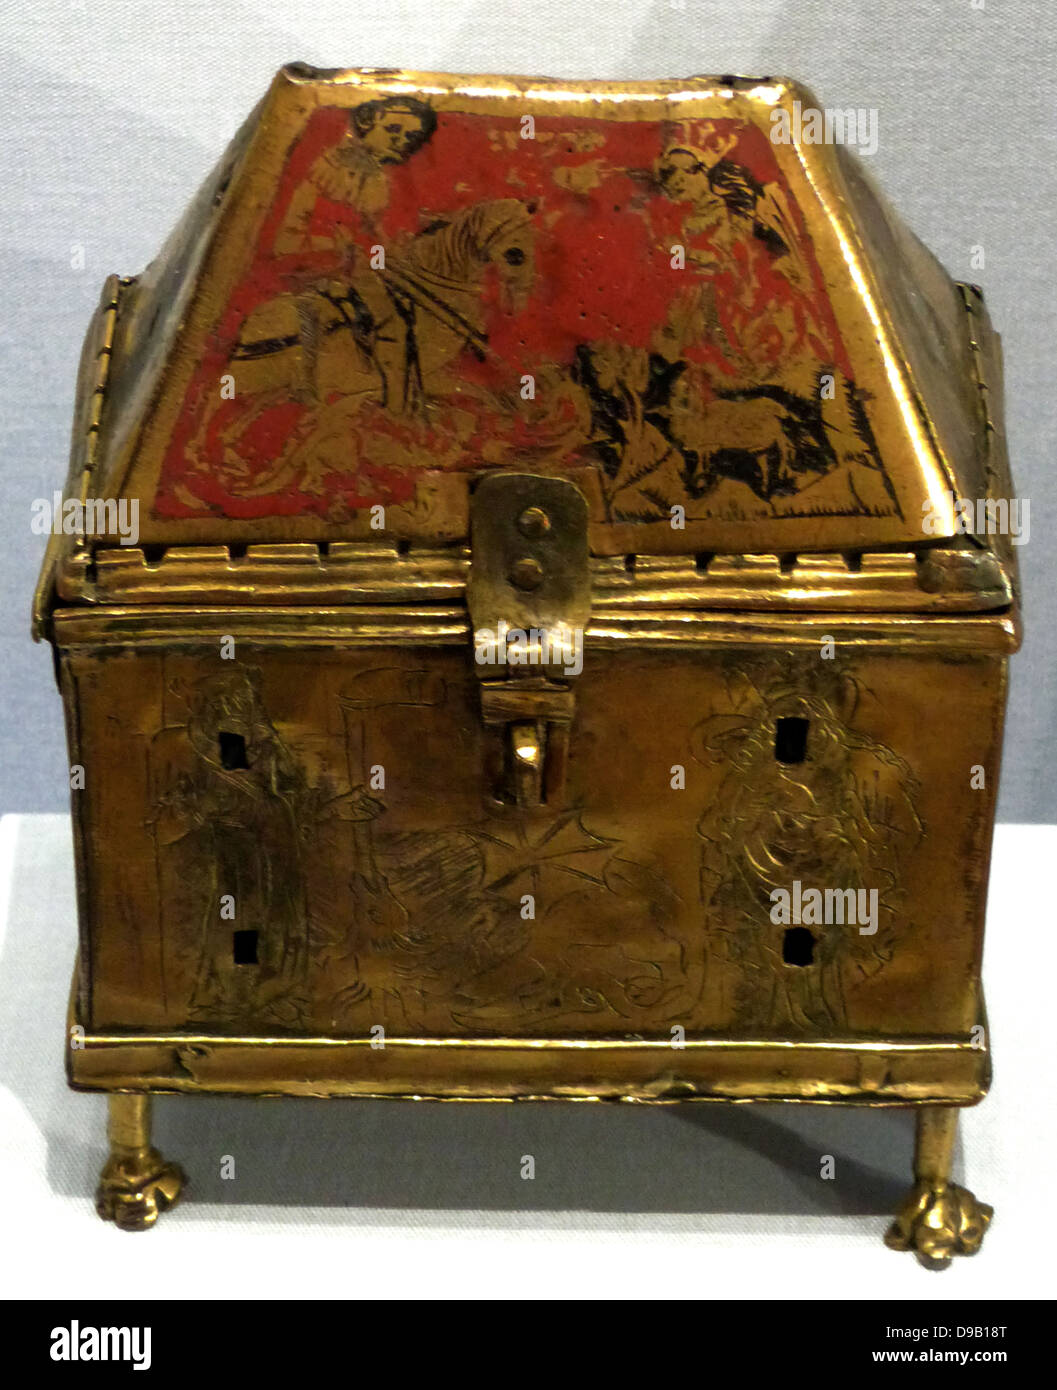 St George Reliquary Casket. A casket containing the relics of St george patron saint of England (depicted on the - Stock Image